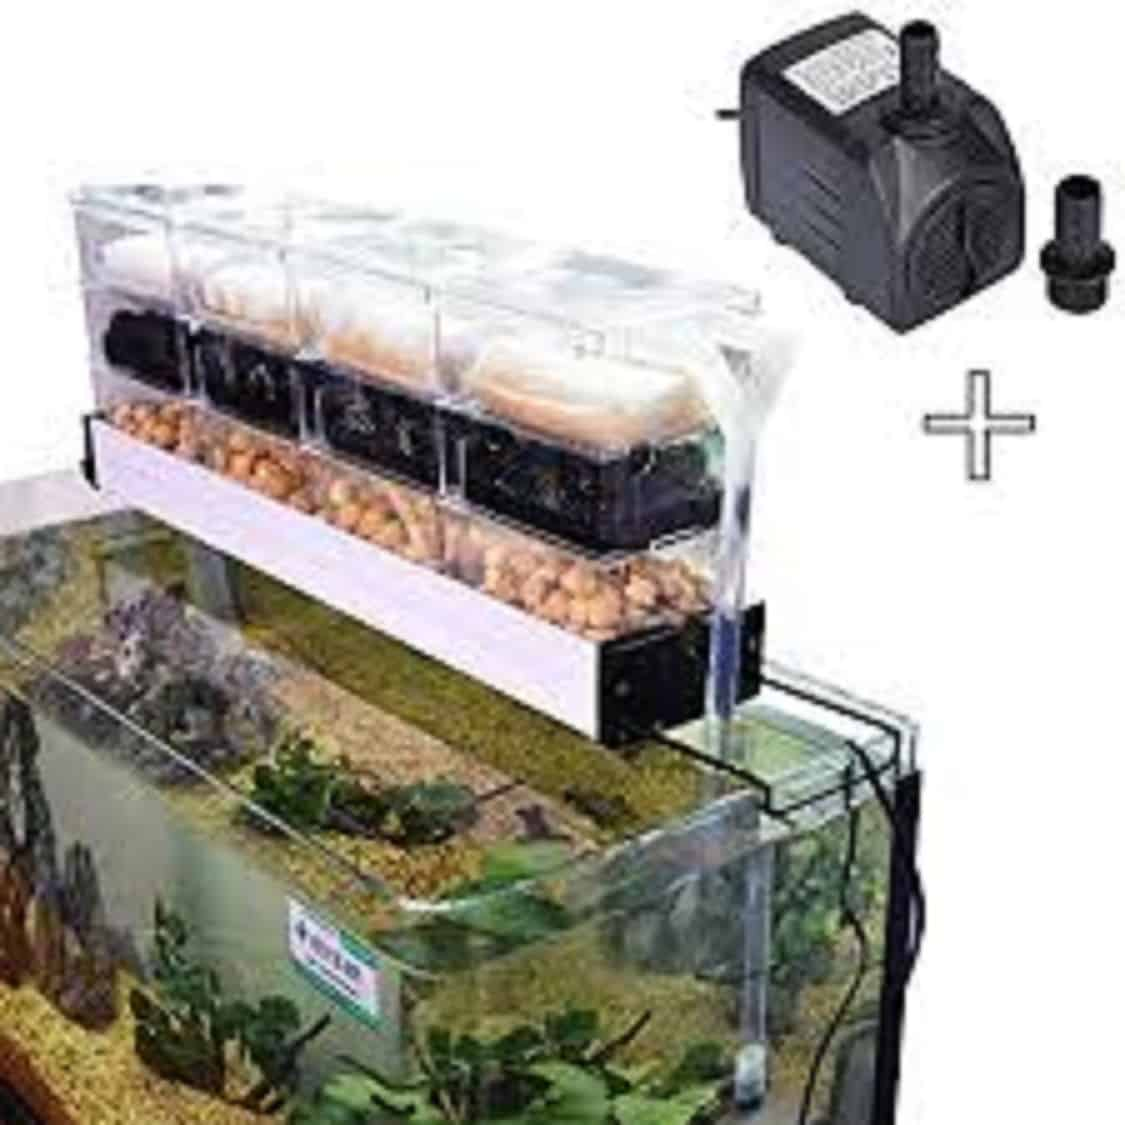 Best Filters For 100-125 Gallon Aquariums